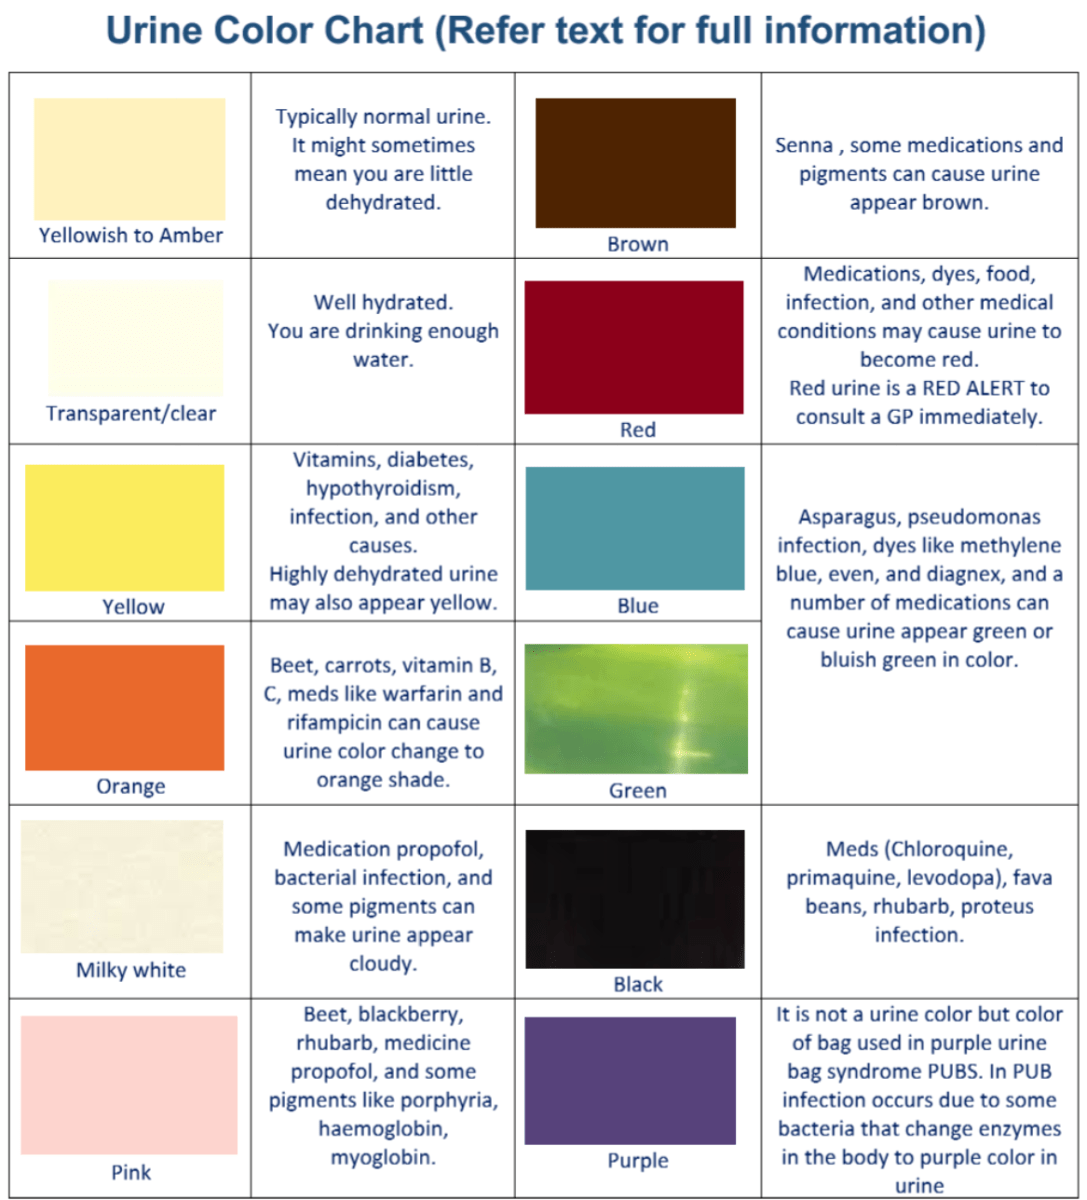 Urine Colors Chart  Medications and Food Can Change Urine Color